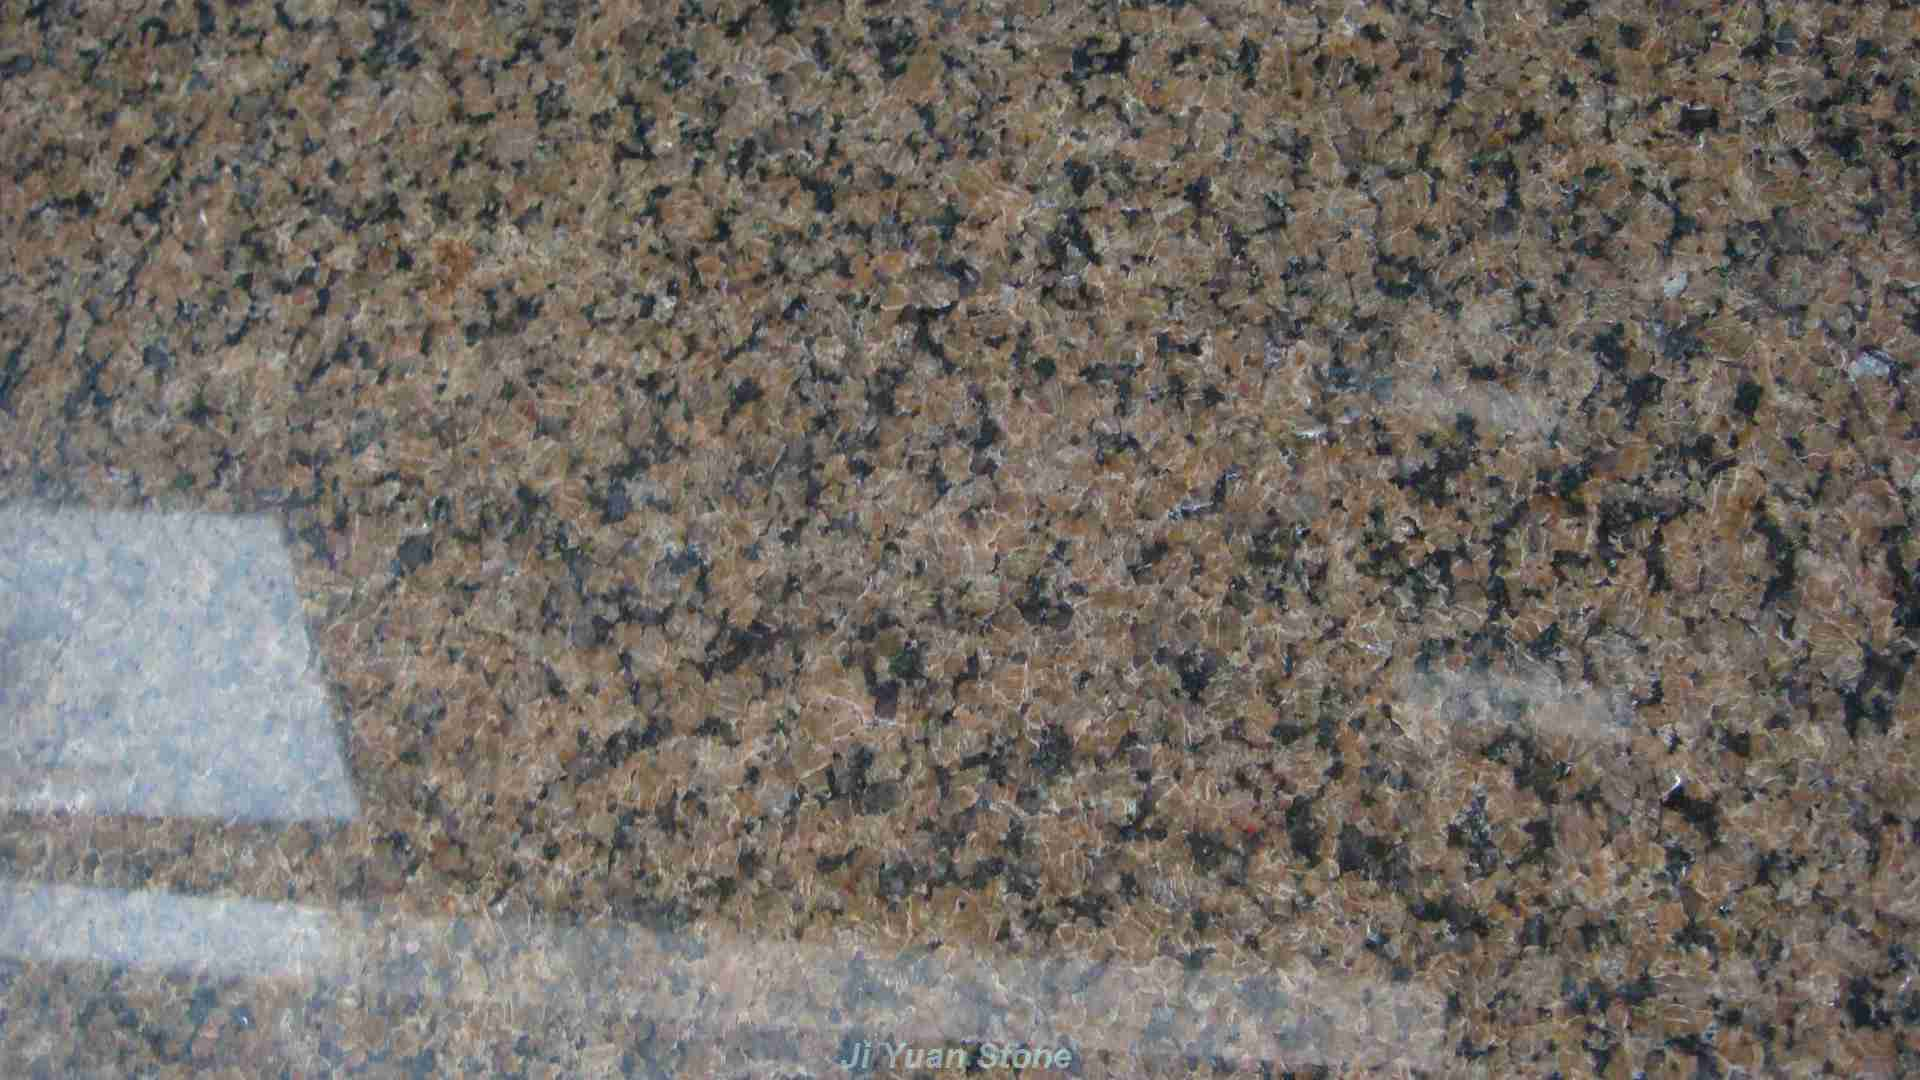 Verde Tropical Granite Tropical Granite Brown Black Granite Countertops Tropical Stone Granite Tropical Black Granite Dark Brown Granite Countertops Brown Granite Worktop